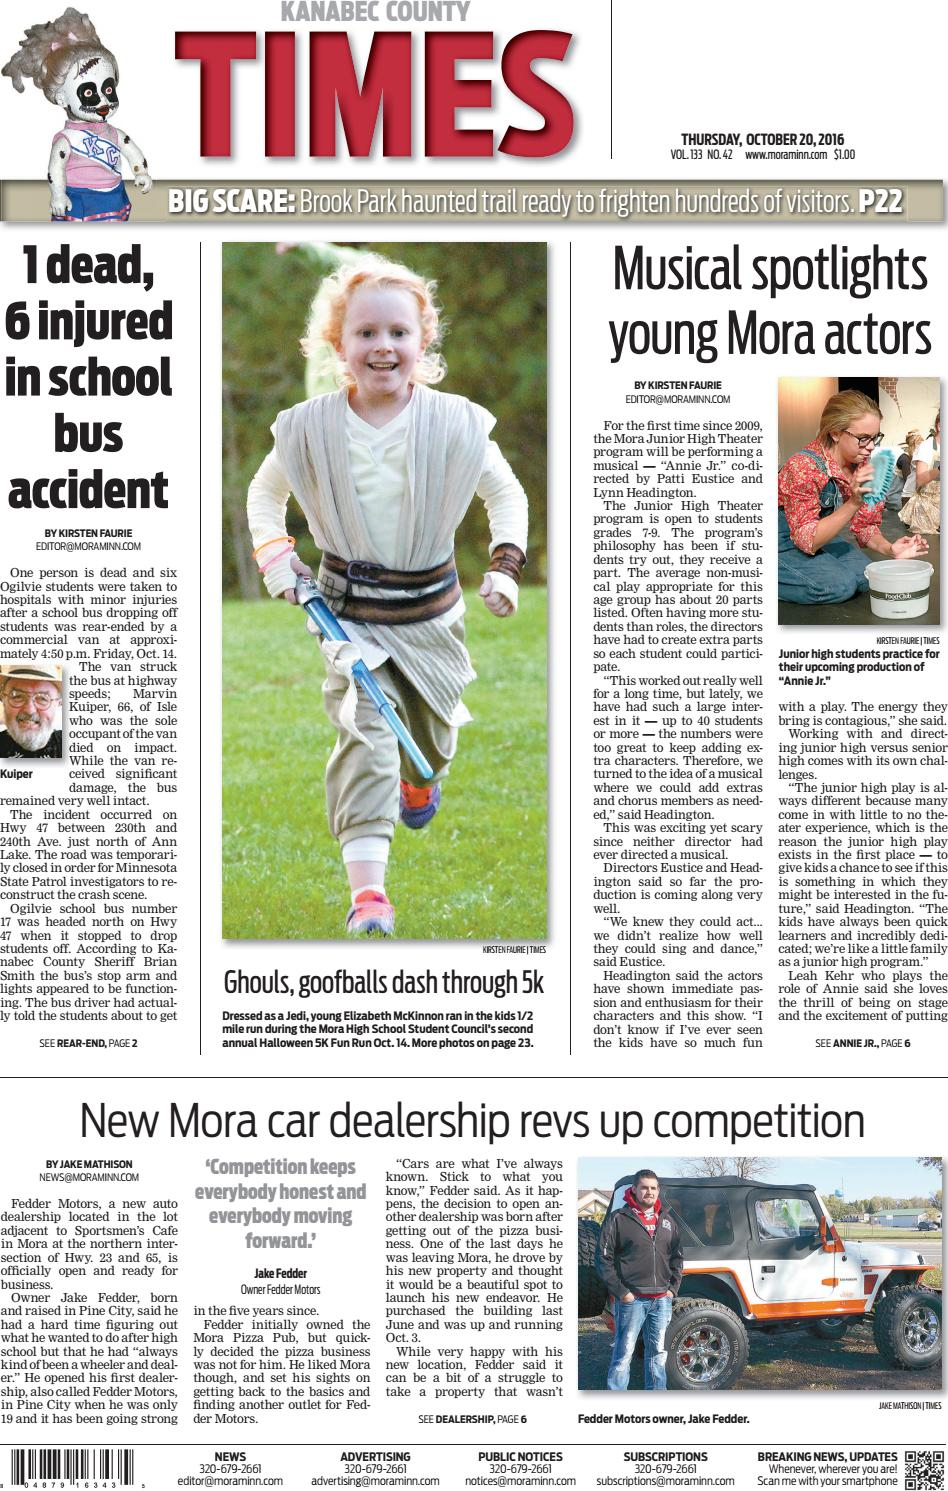 Kanabec County Times E-edition Oct  20, 2016 by Kanabec